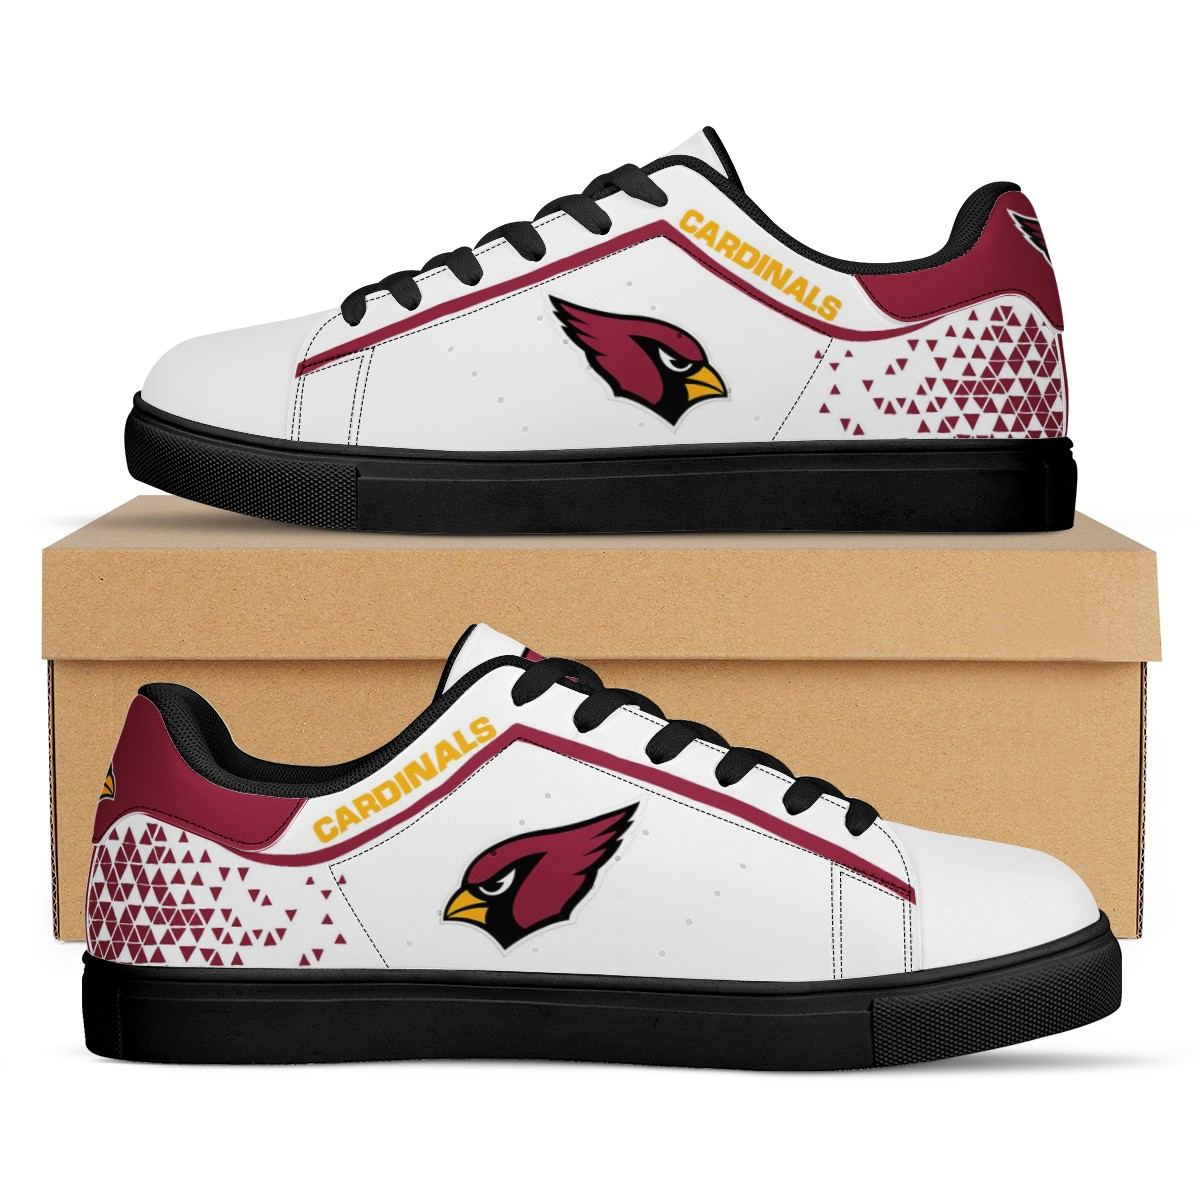 Men's Arizona Cardinals Low Top Leather Sneakers 001